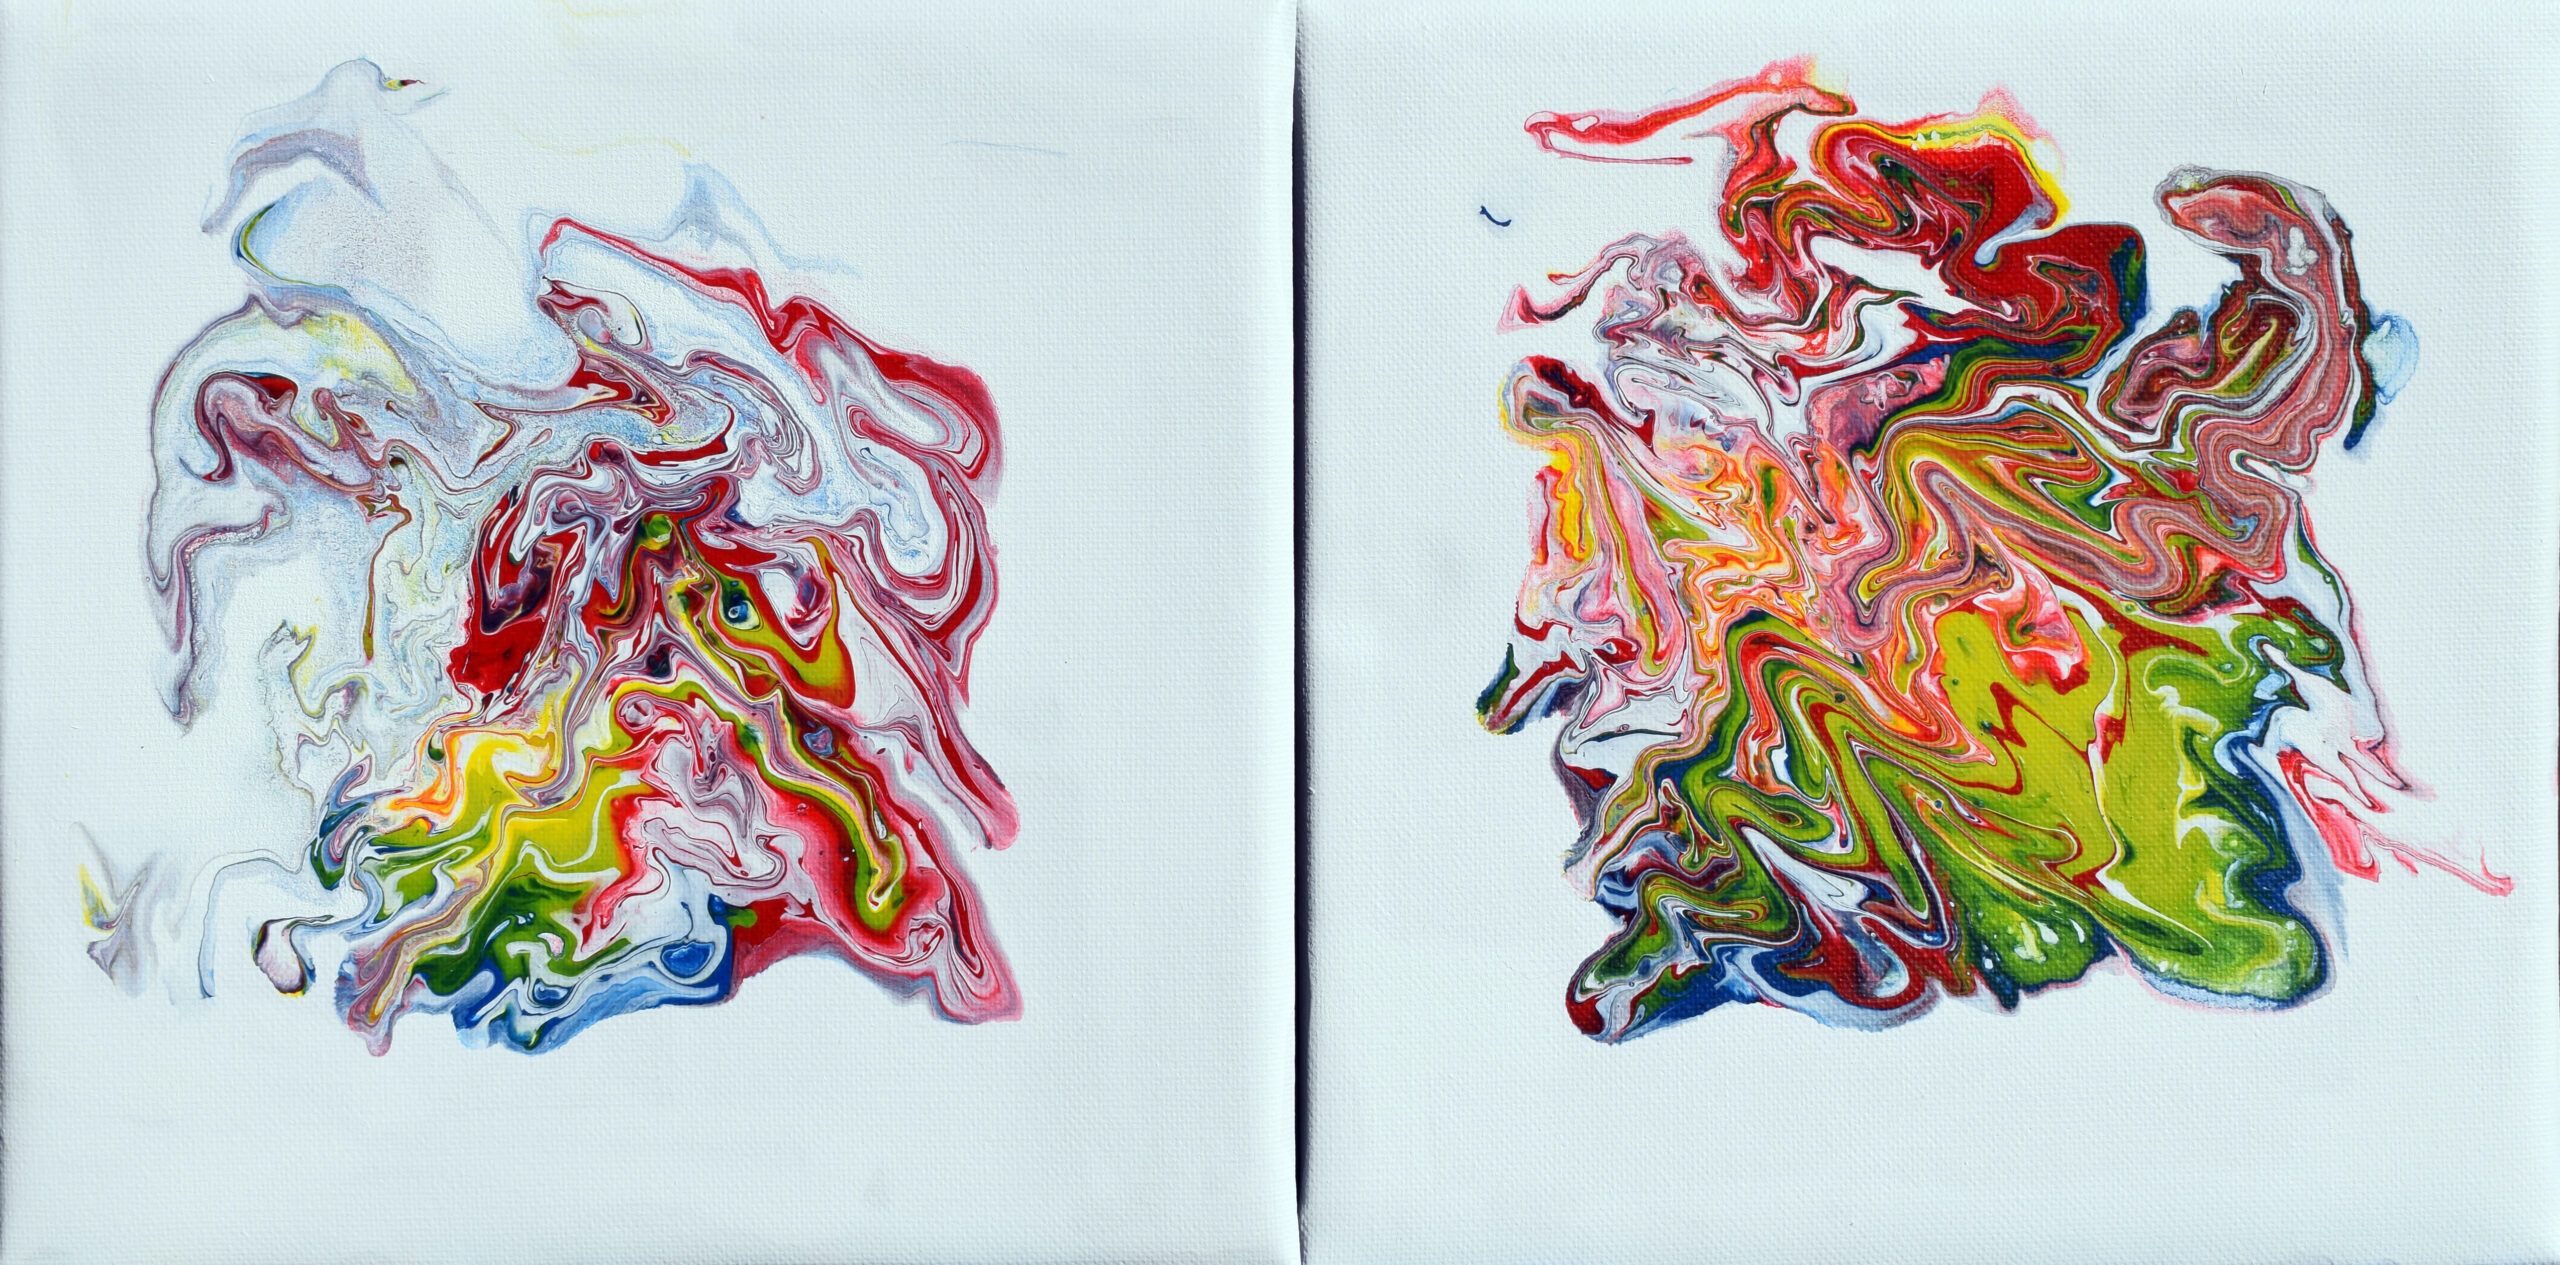 Two Small Abstract a' 25 X 25 cm